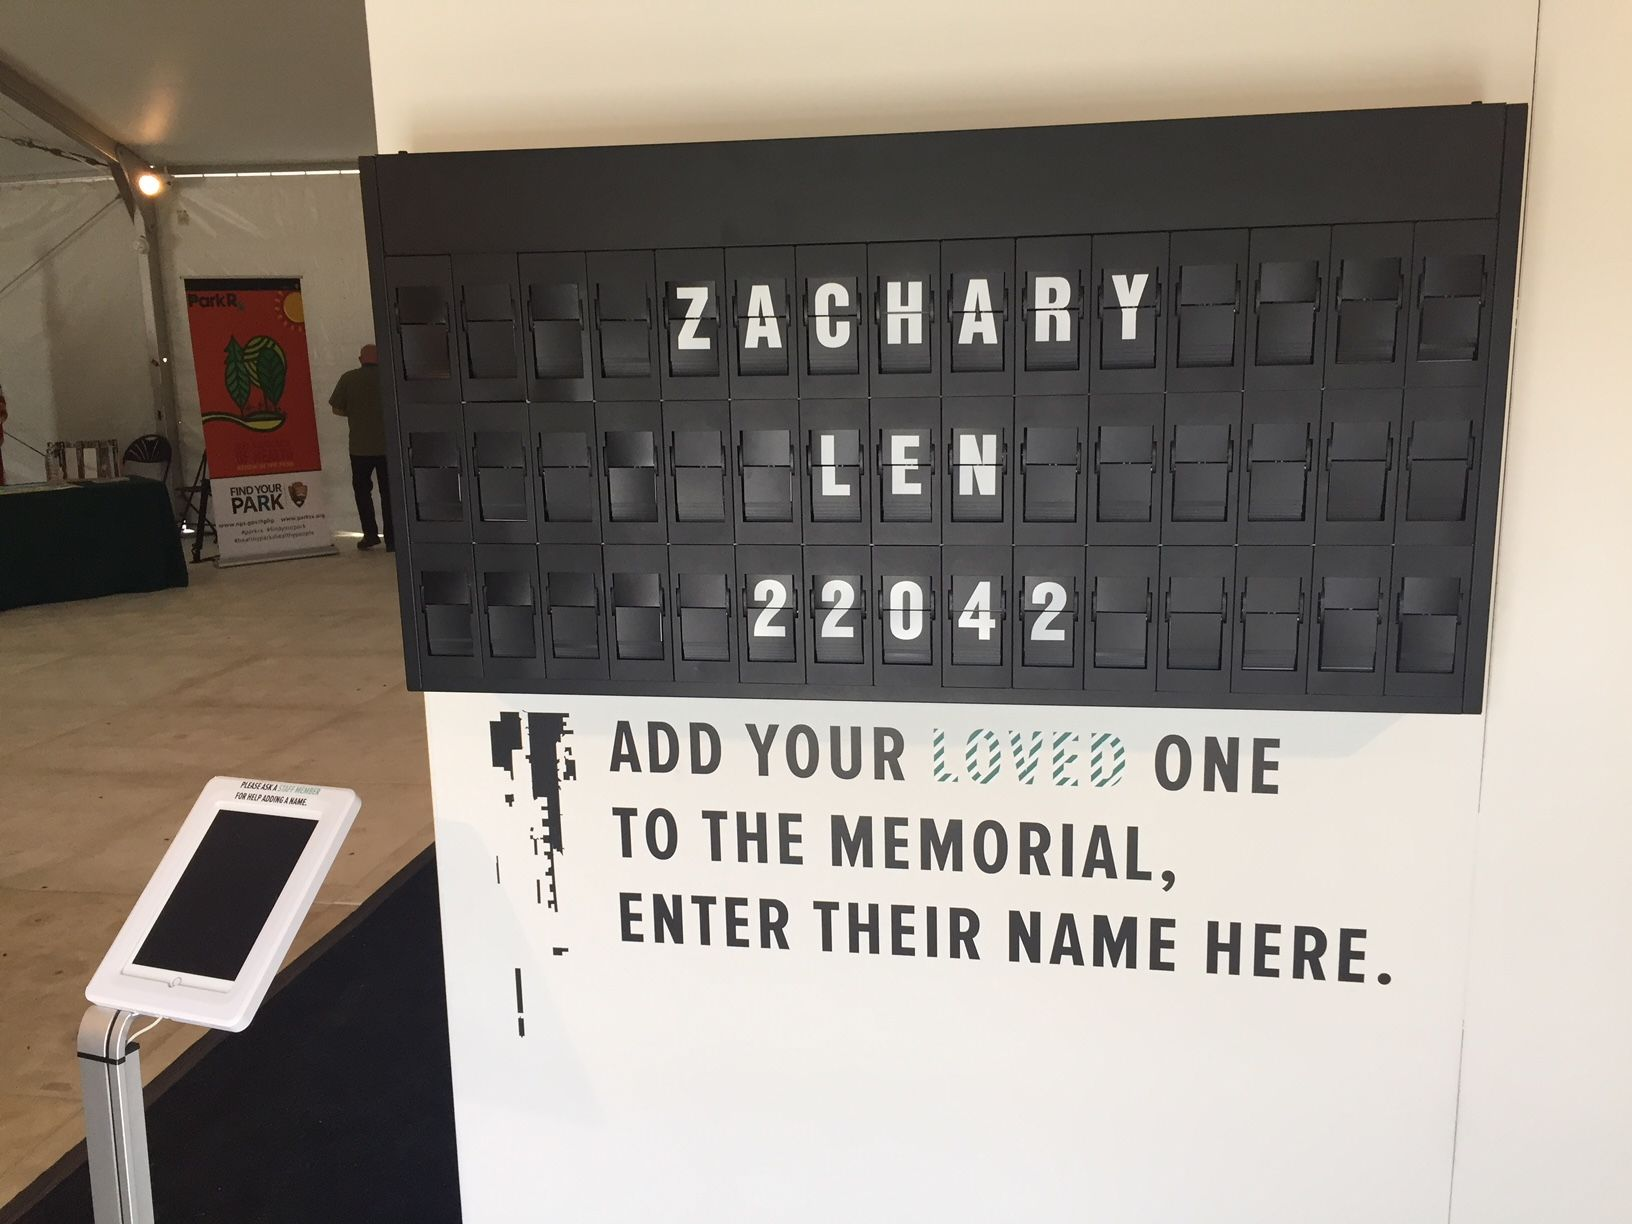 At the end of the memorial is a board that lets you remember anyone you know who died from an overdose.  Every few seconds a new name, with another number, is shown (Photo by John Domen).